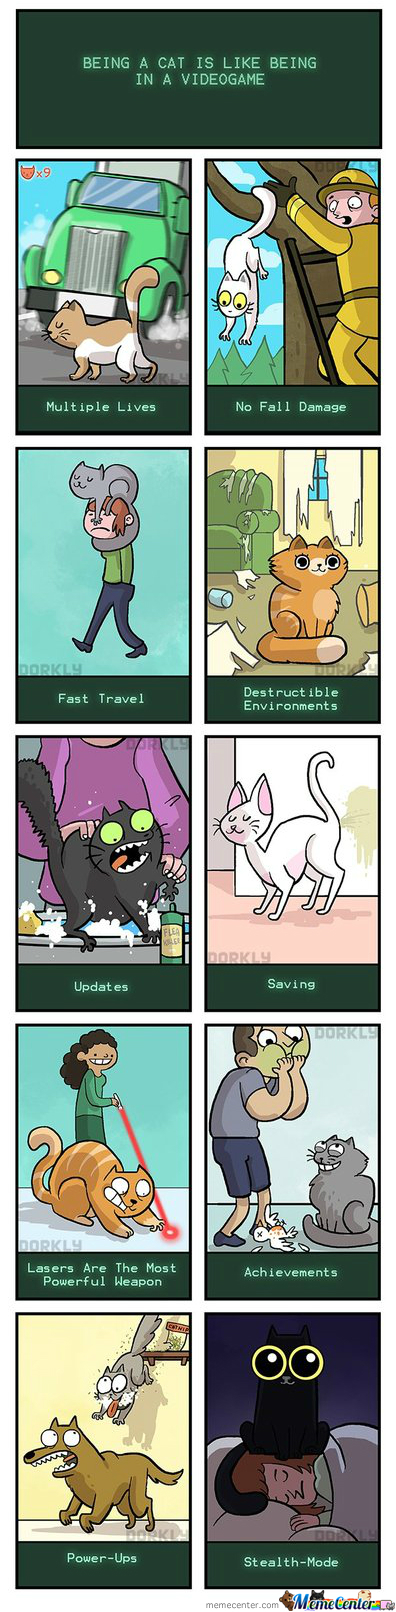 Being A Cat Is Like Being In A Video Game (Dorkly)